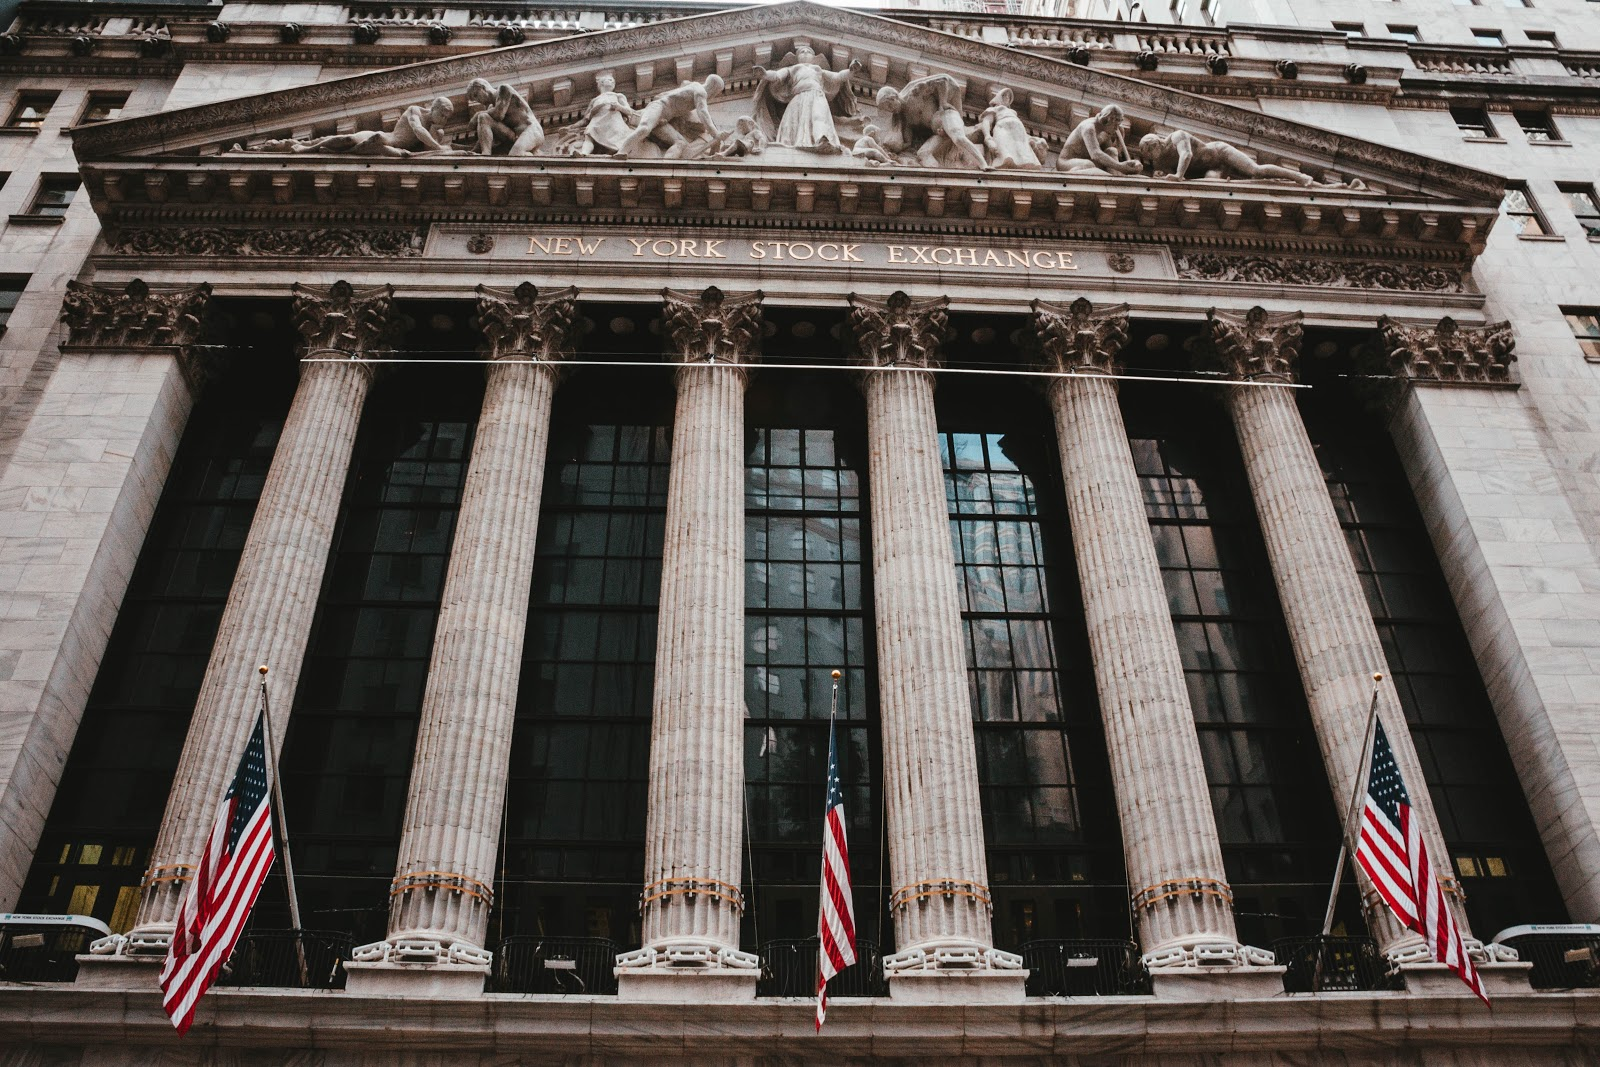 A photo of the New York Stock Exchange